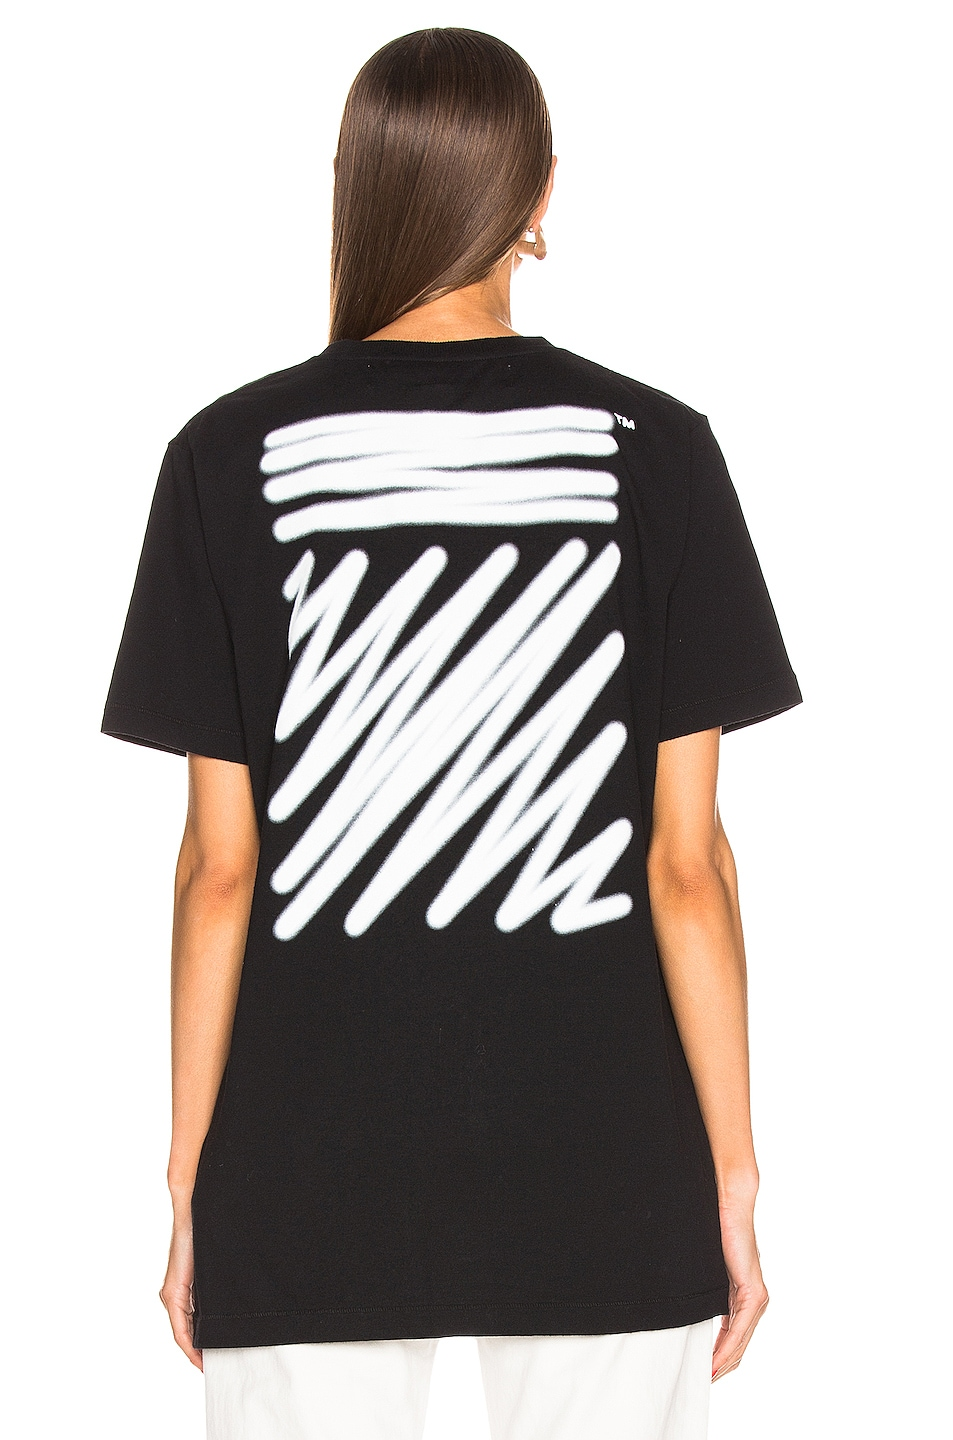 Image 5 of OFF-WHITE FWRD EXCLUSIVE Short Sleeve Tee in Black